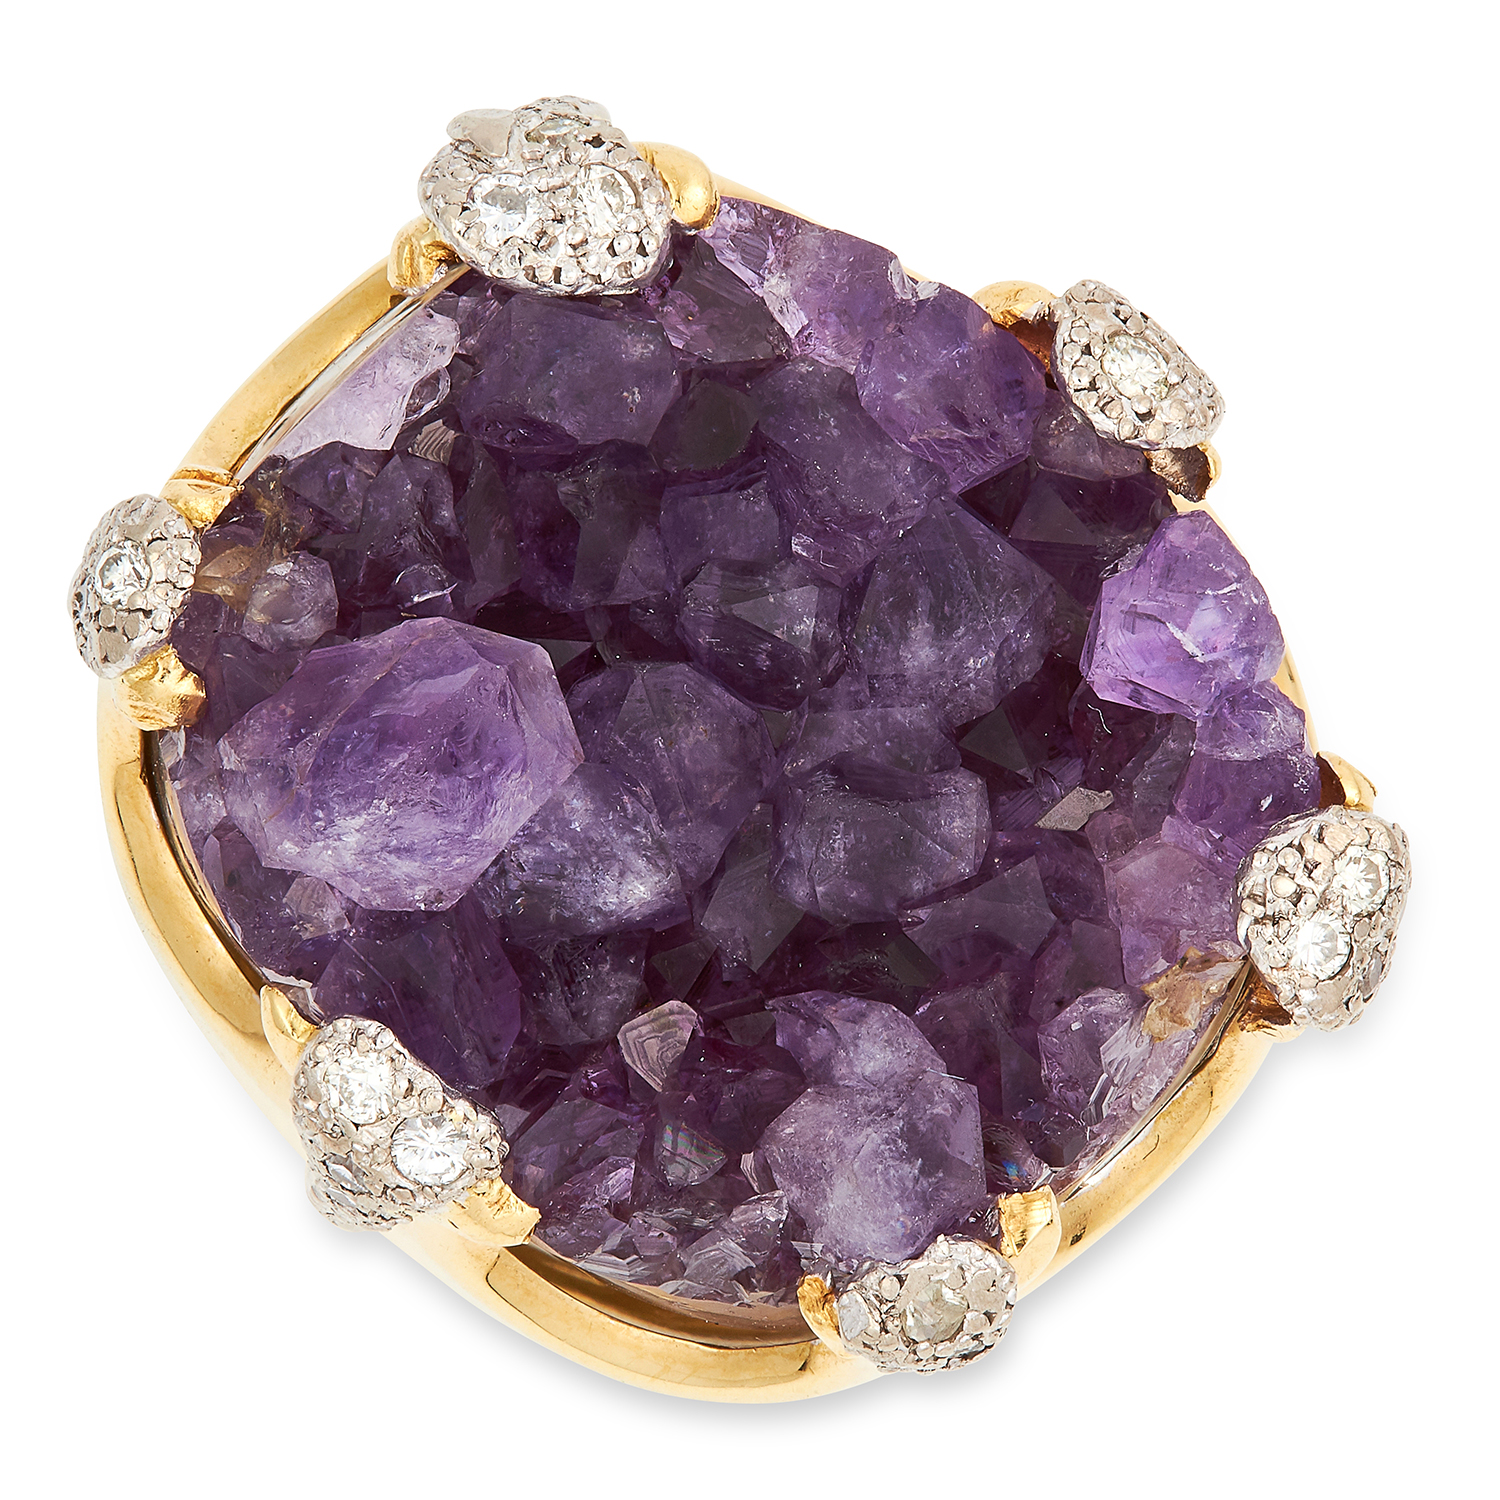 Los 35 - VINTAGE AMETHYST AND DIAMOND RING, ALBION CRAFT COMPANY 1971 set with a piece of amethyst crystal on